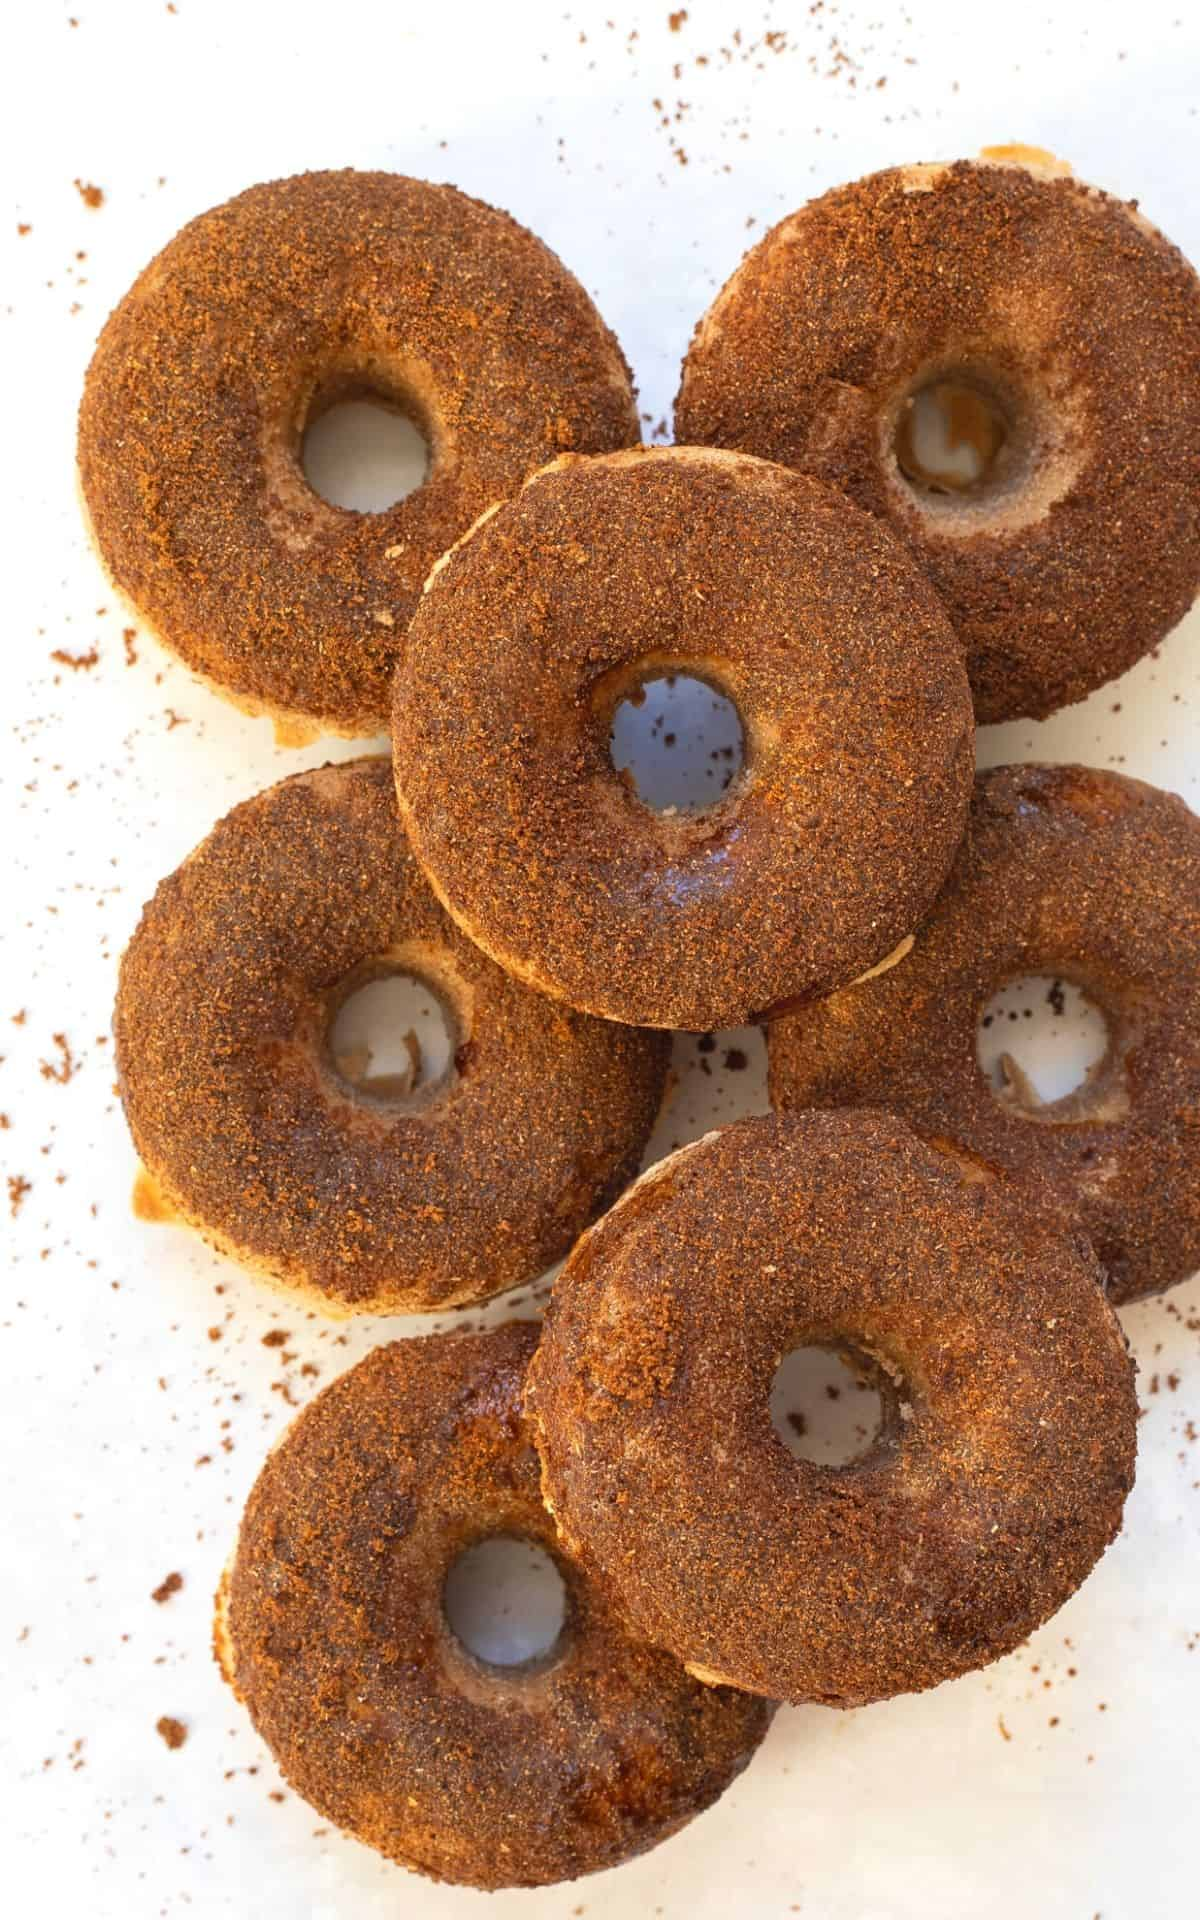 7 cinnamon doughnuts on a white backdrop stacked on top of eachother